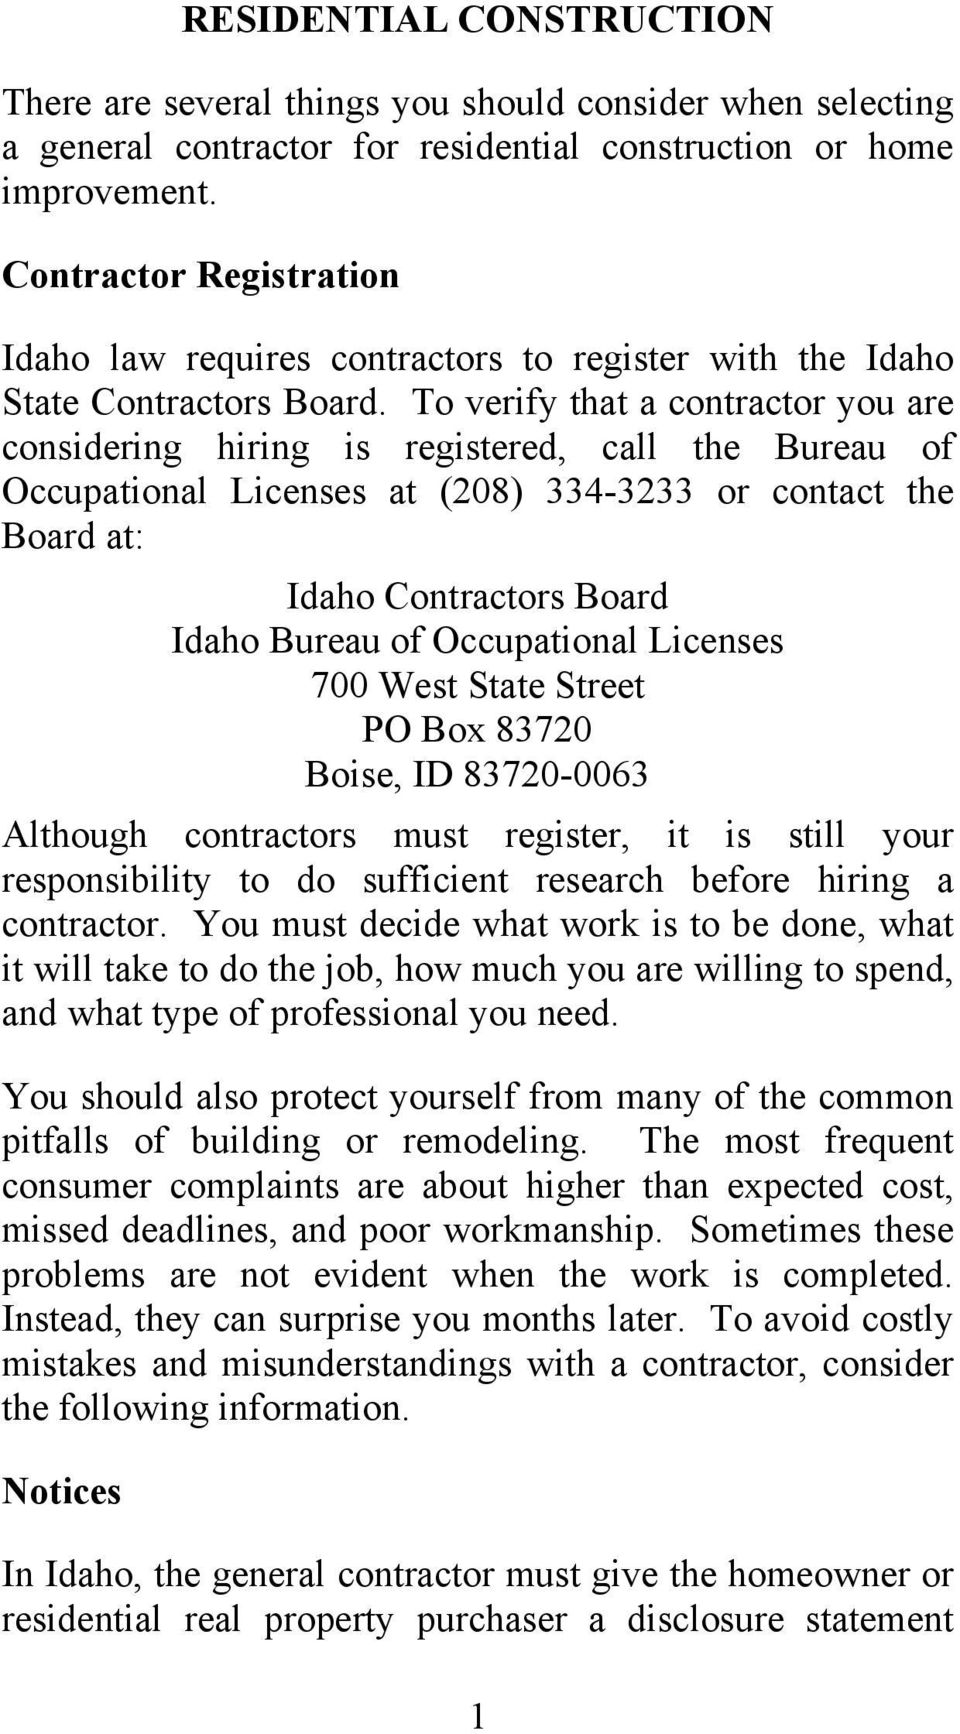 To verify that a contractor you are considering hiring is registered, call the Bureau of Occupational Licenses at (208) 334-3233 or contact the Board at: Idaho Contractors Board Idaho Bureau of